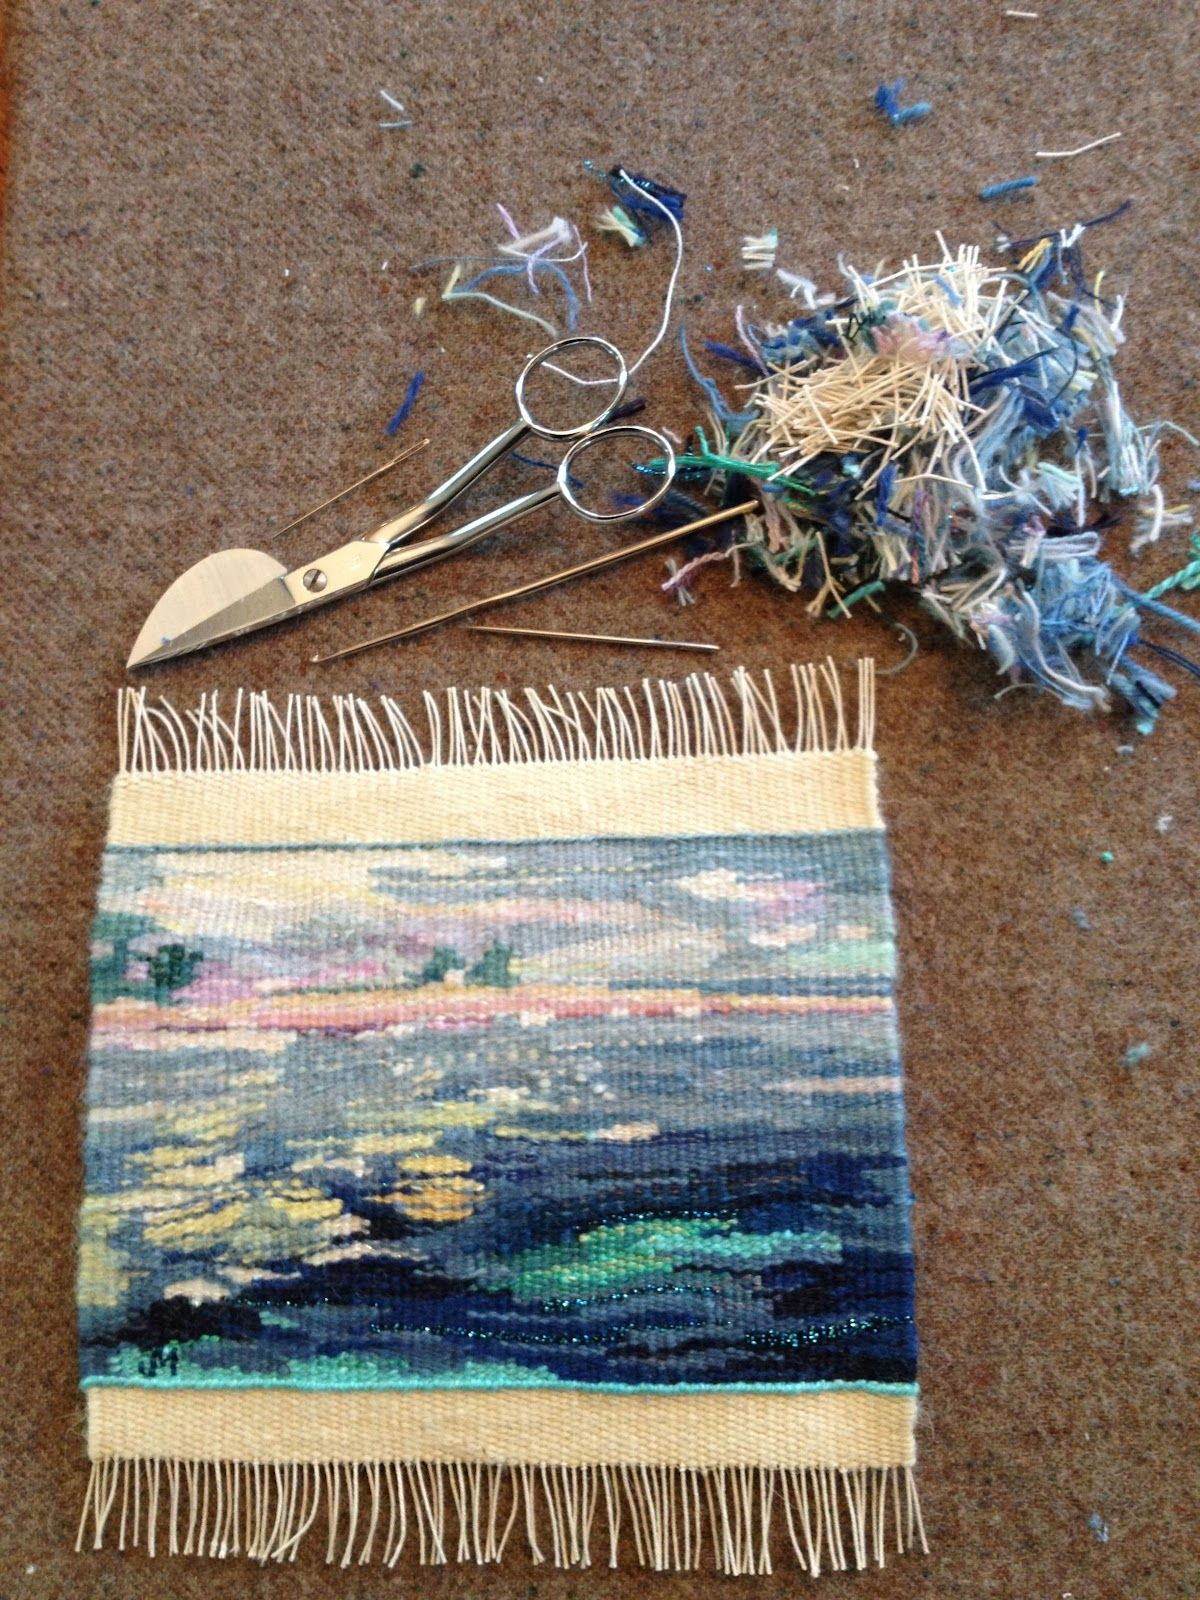 J Meetze Studio Common Threads Finishing A Small Tapestry